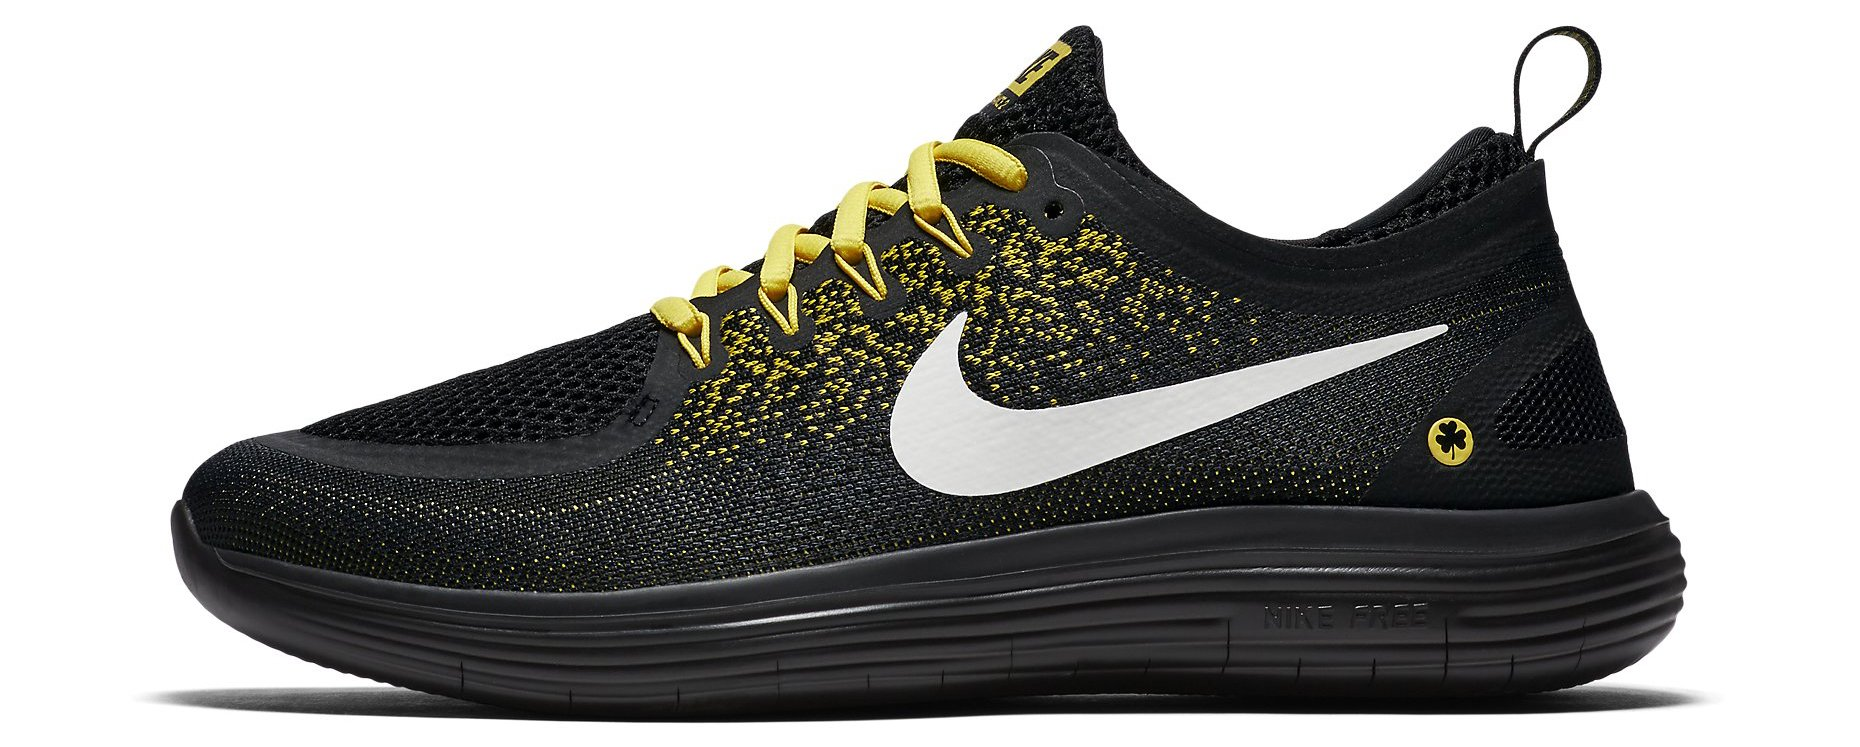 low priced d60b4 96bf8 ... Running shoes Nike FREE RN DISTANCE 2 BSTN ...